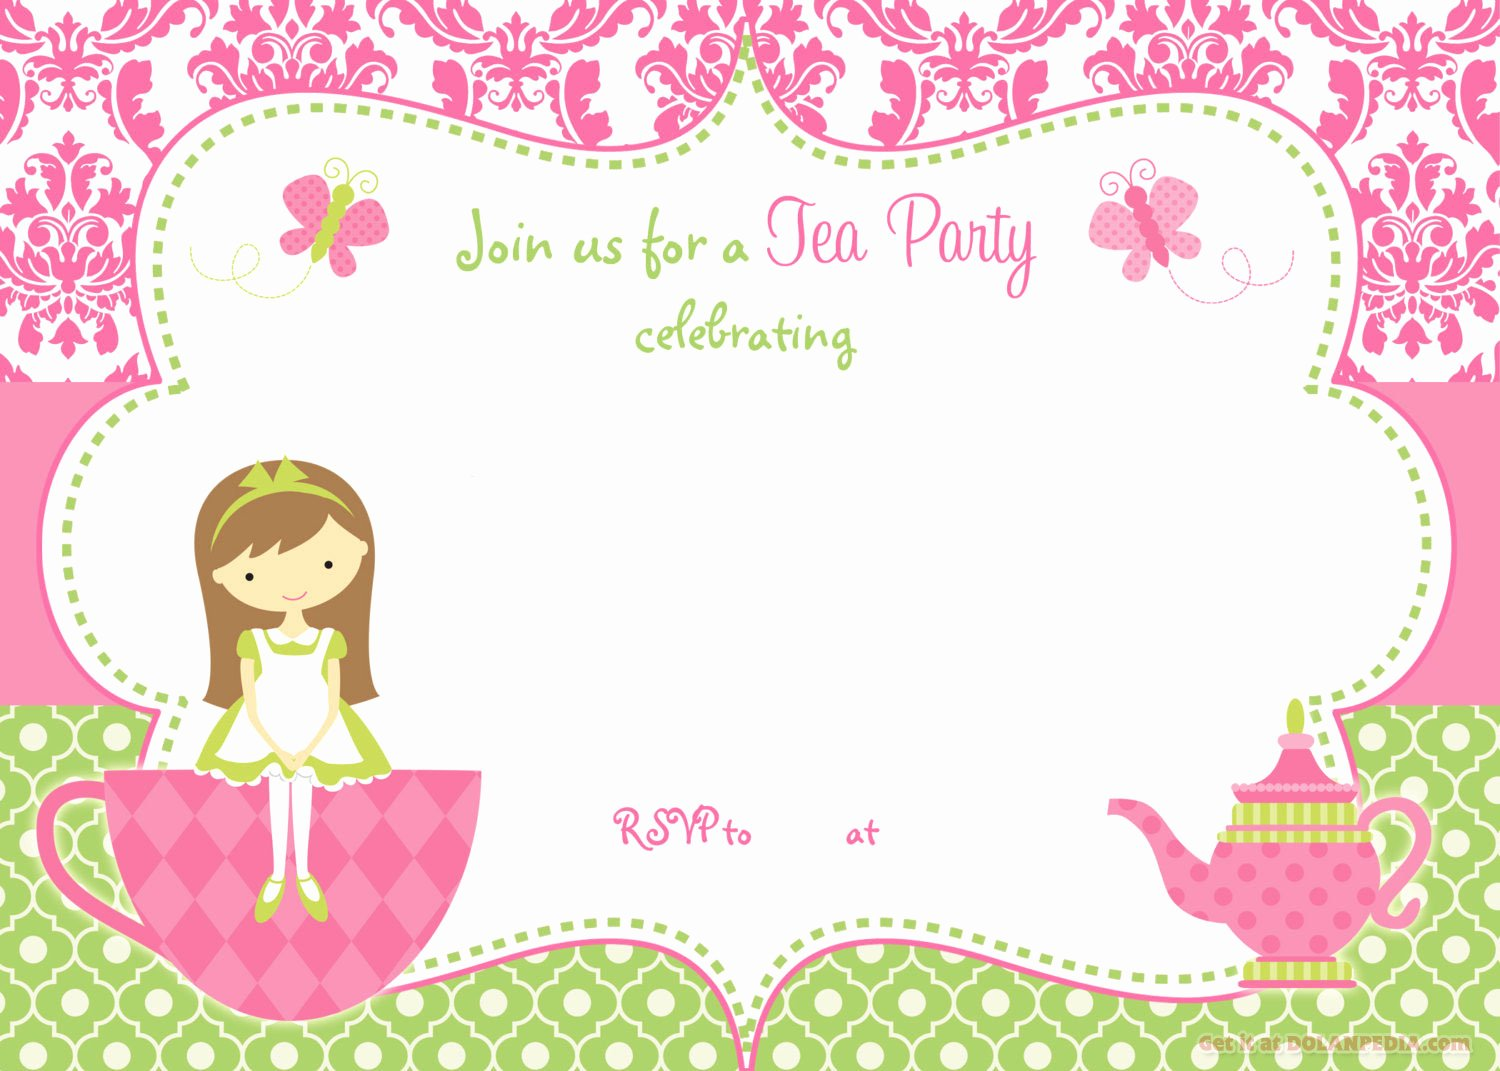 Tea Party Invitation Template Best Of Free Printable Tea Party Invitation Template for Girl